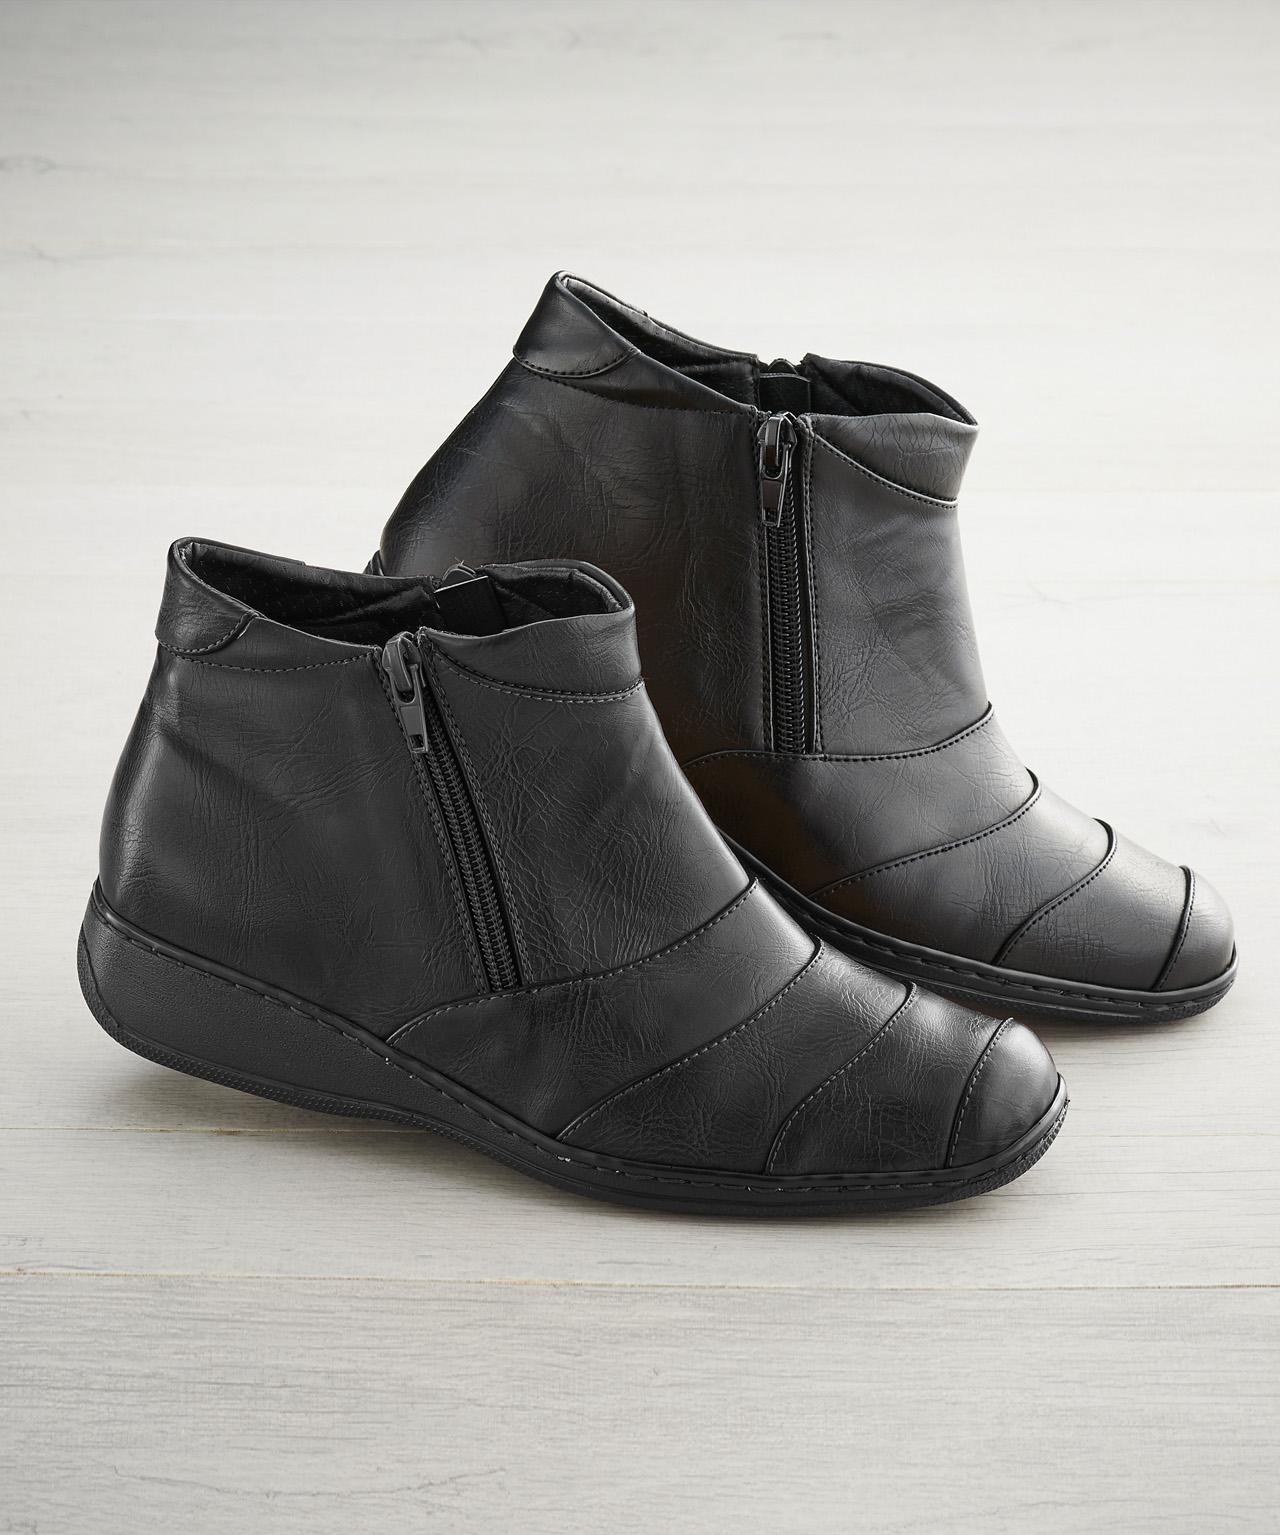 6ef691e02ba DAMART Coussin D air Wide Fit Ankle Boots in Black - Lyst